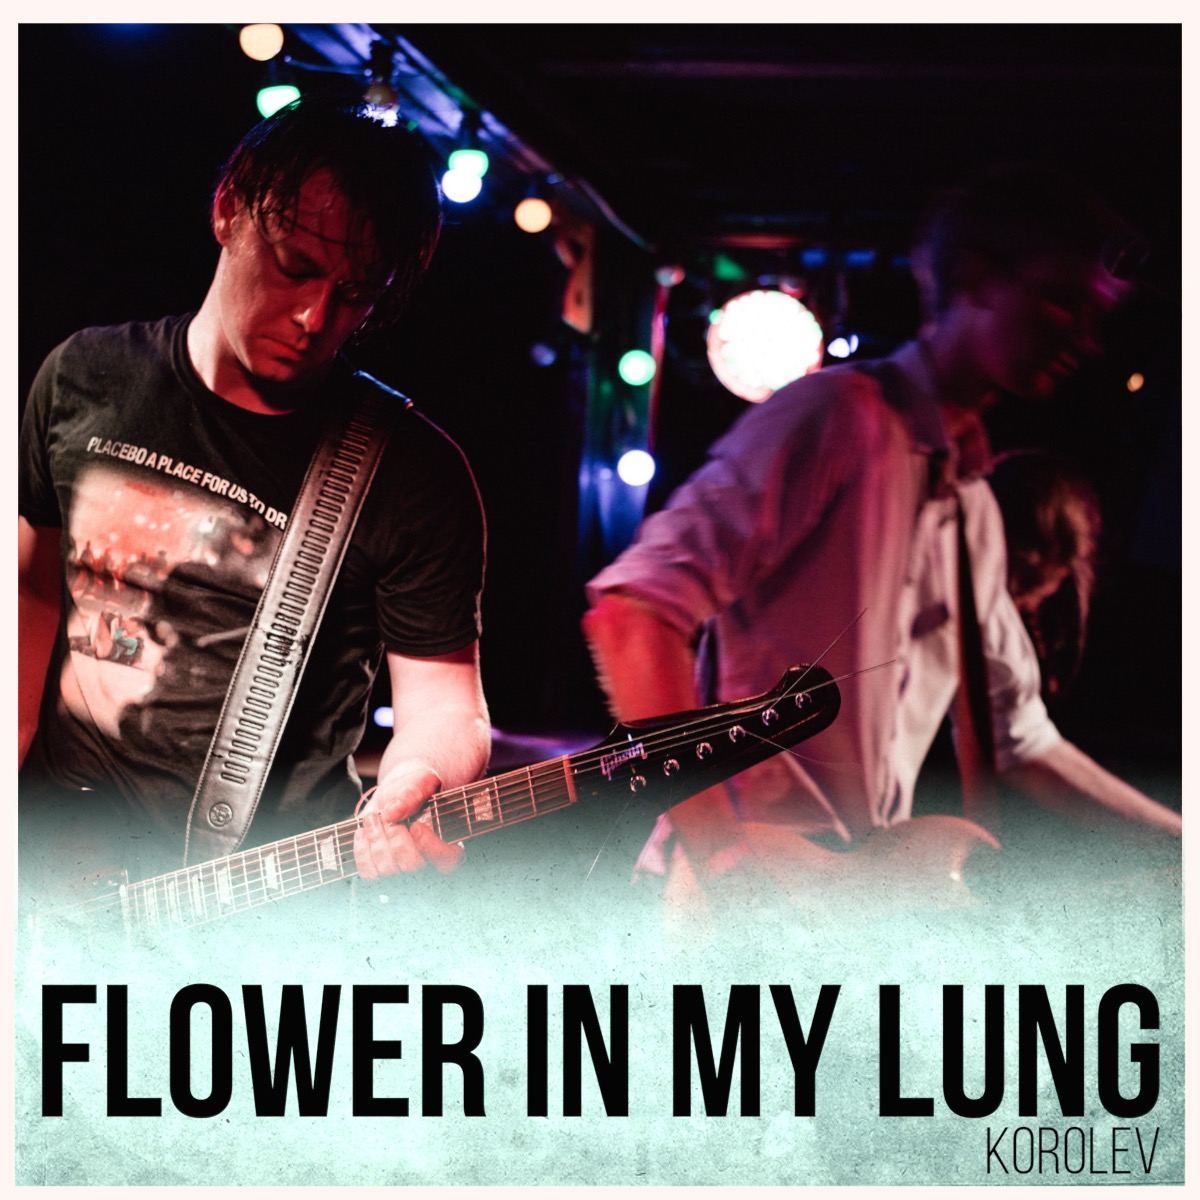 Flower In My Lung (Королёв)